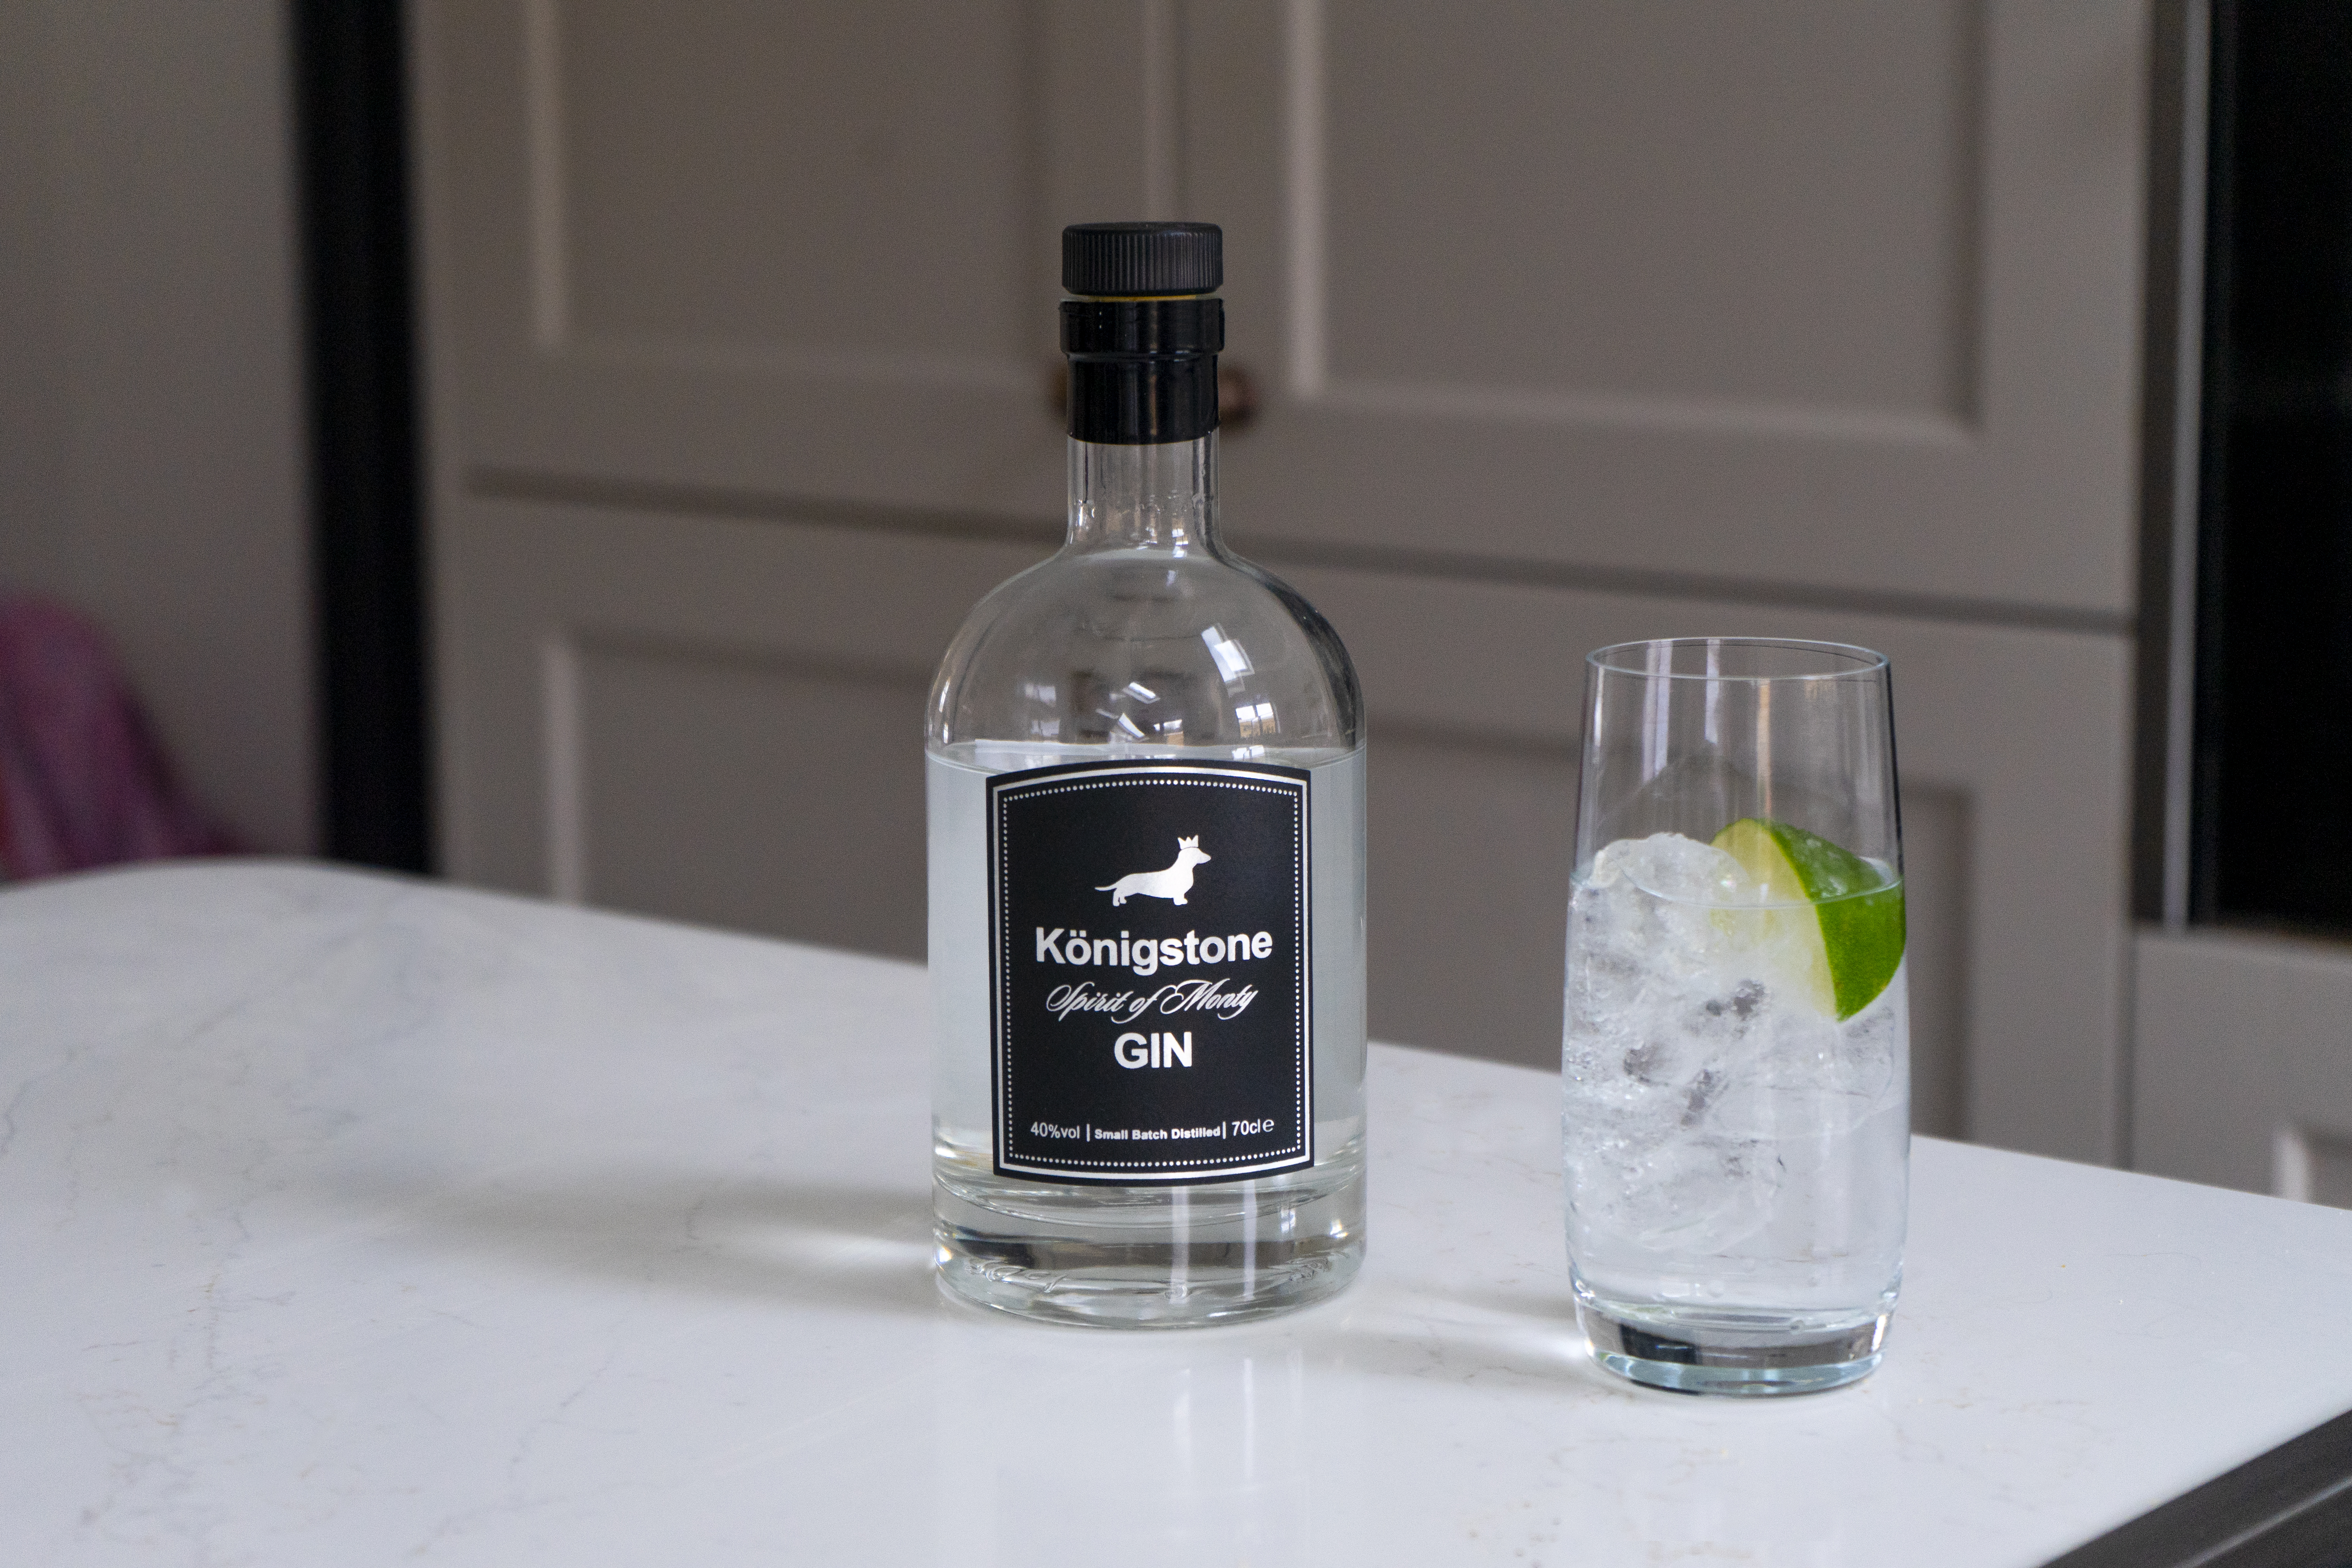 Share a photo of your Konigstone surfaces for a chance to receive a bottle of Konigstone Gin